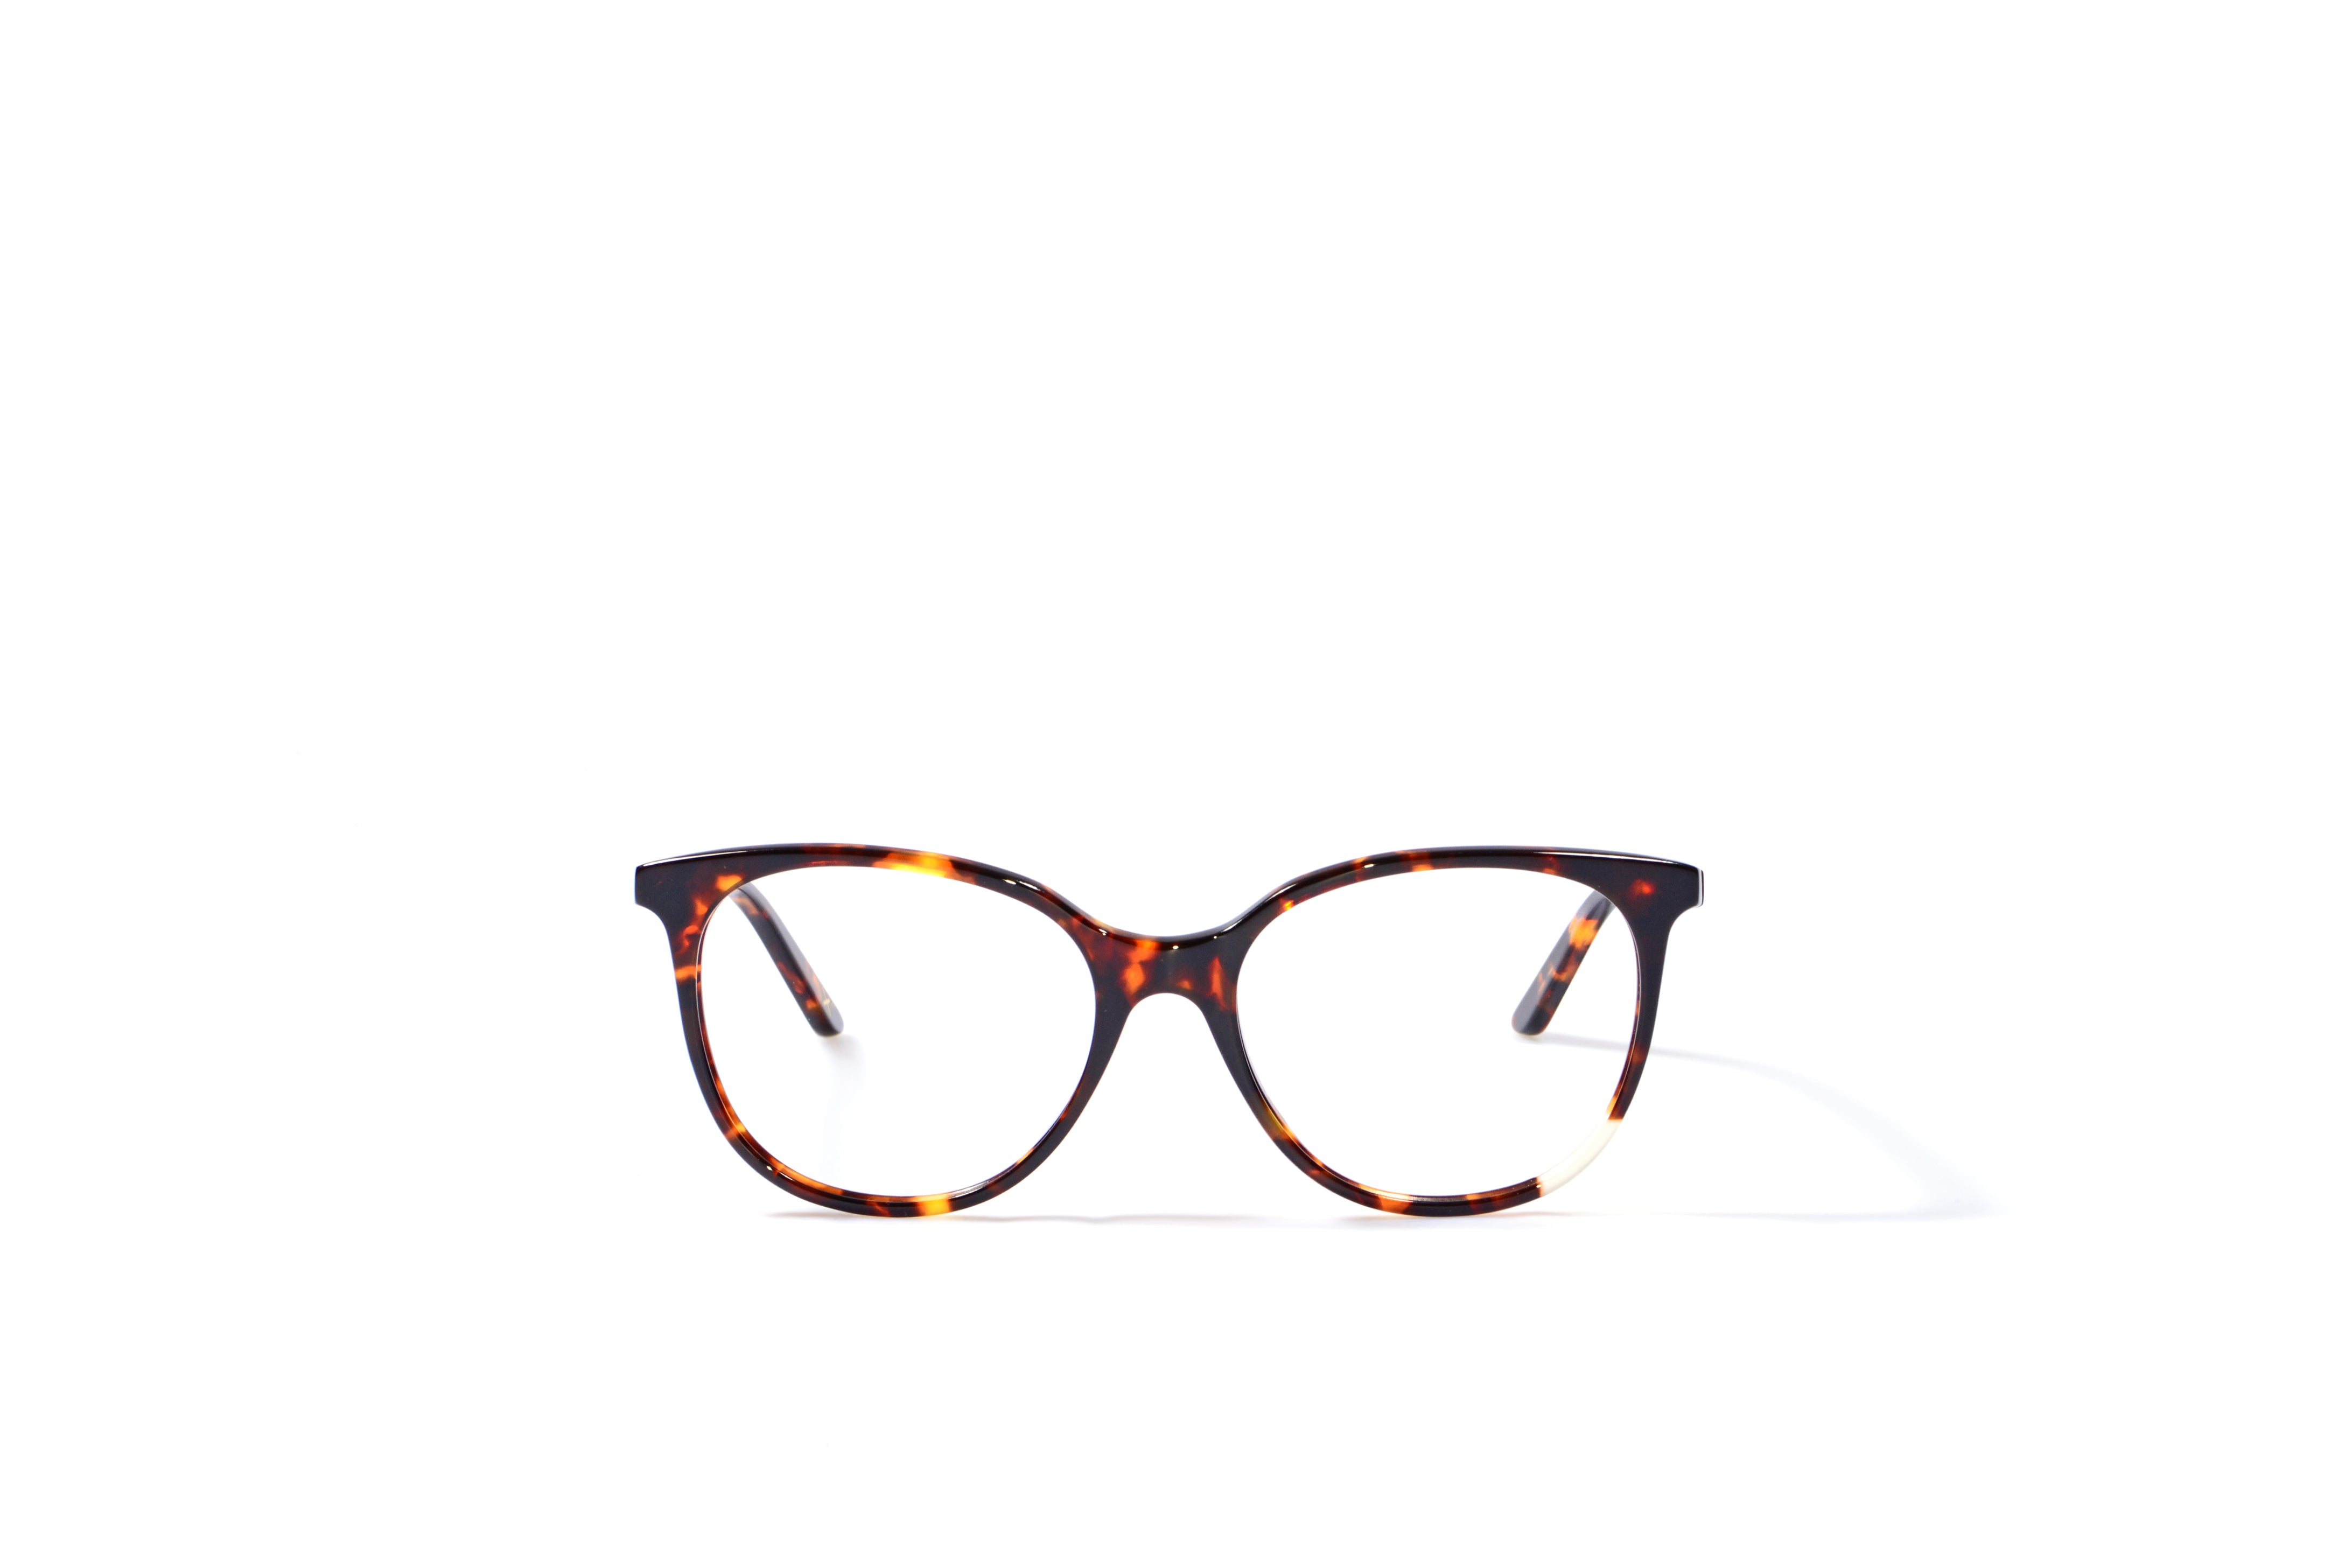 1c4586b440d Leoni Opti JP 2102 02 Optical glasses havana frame – JPLUS